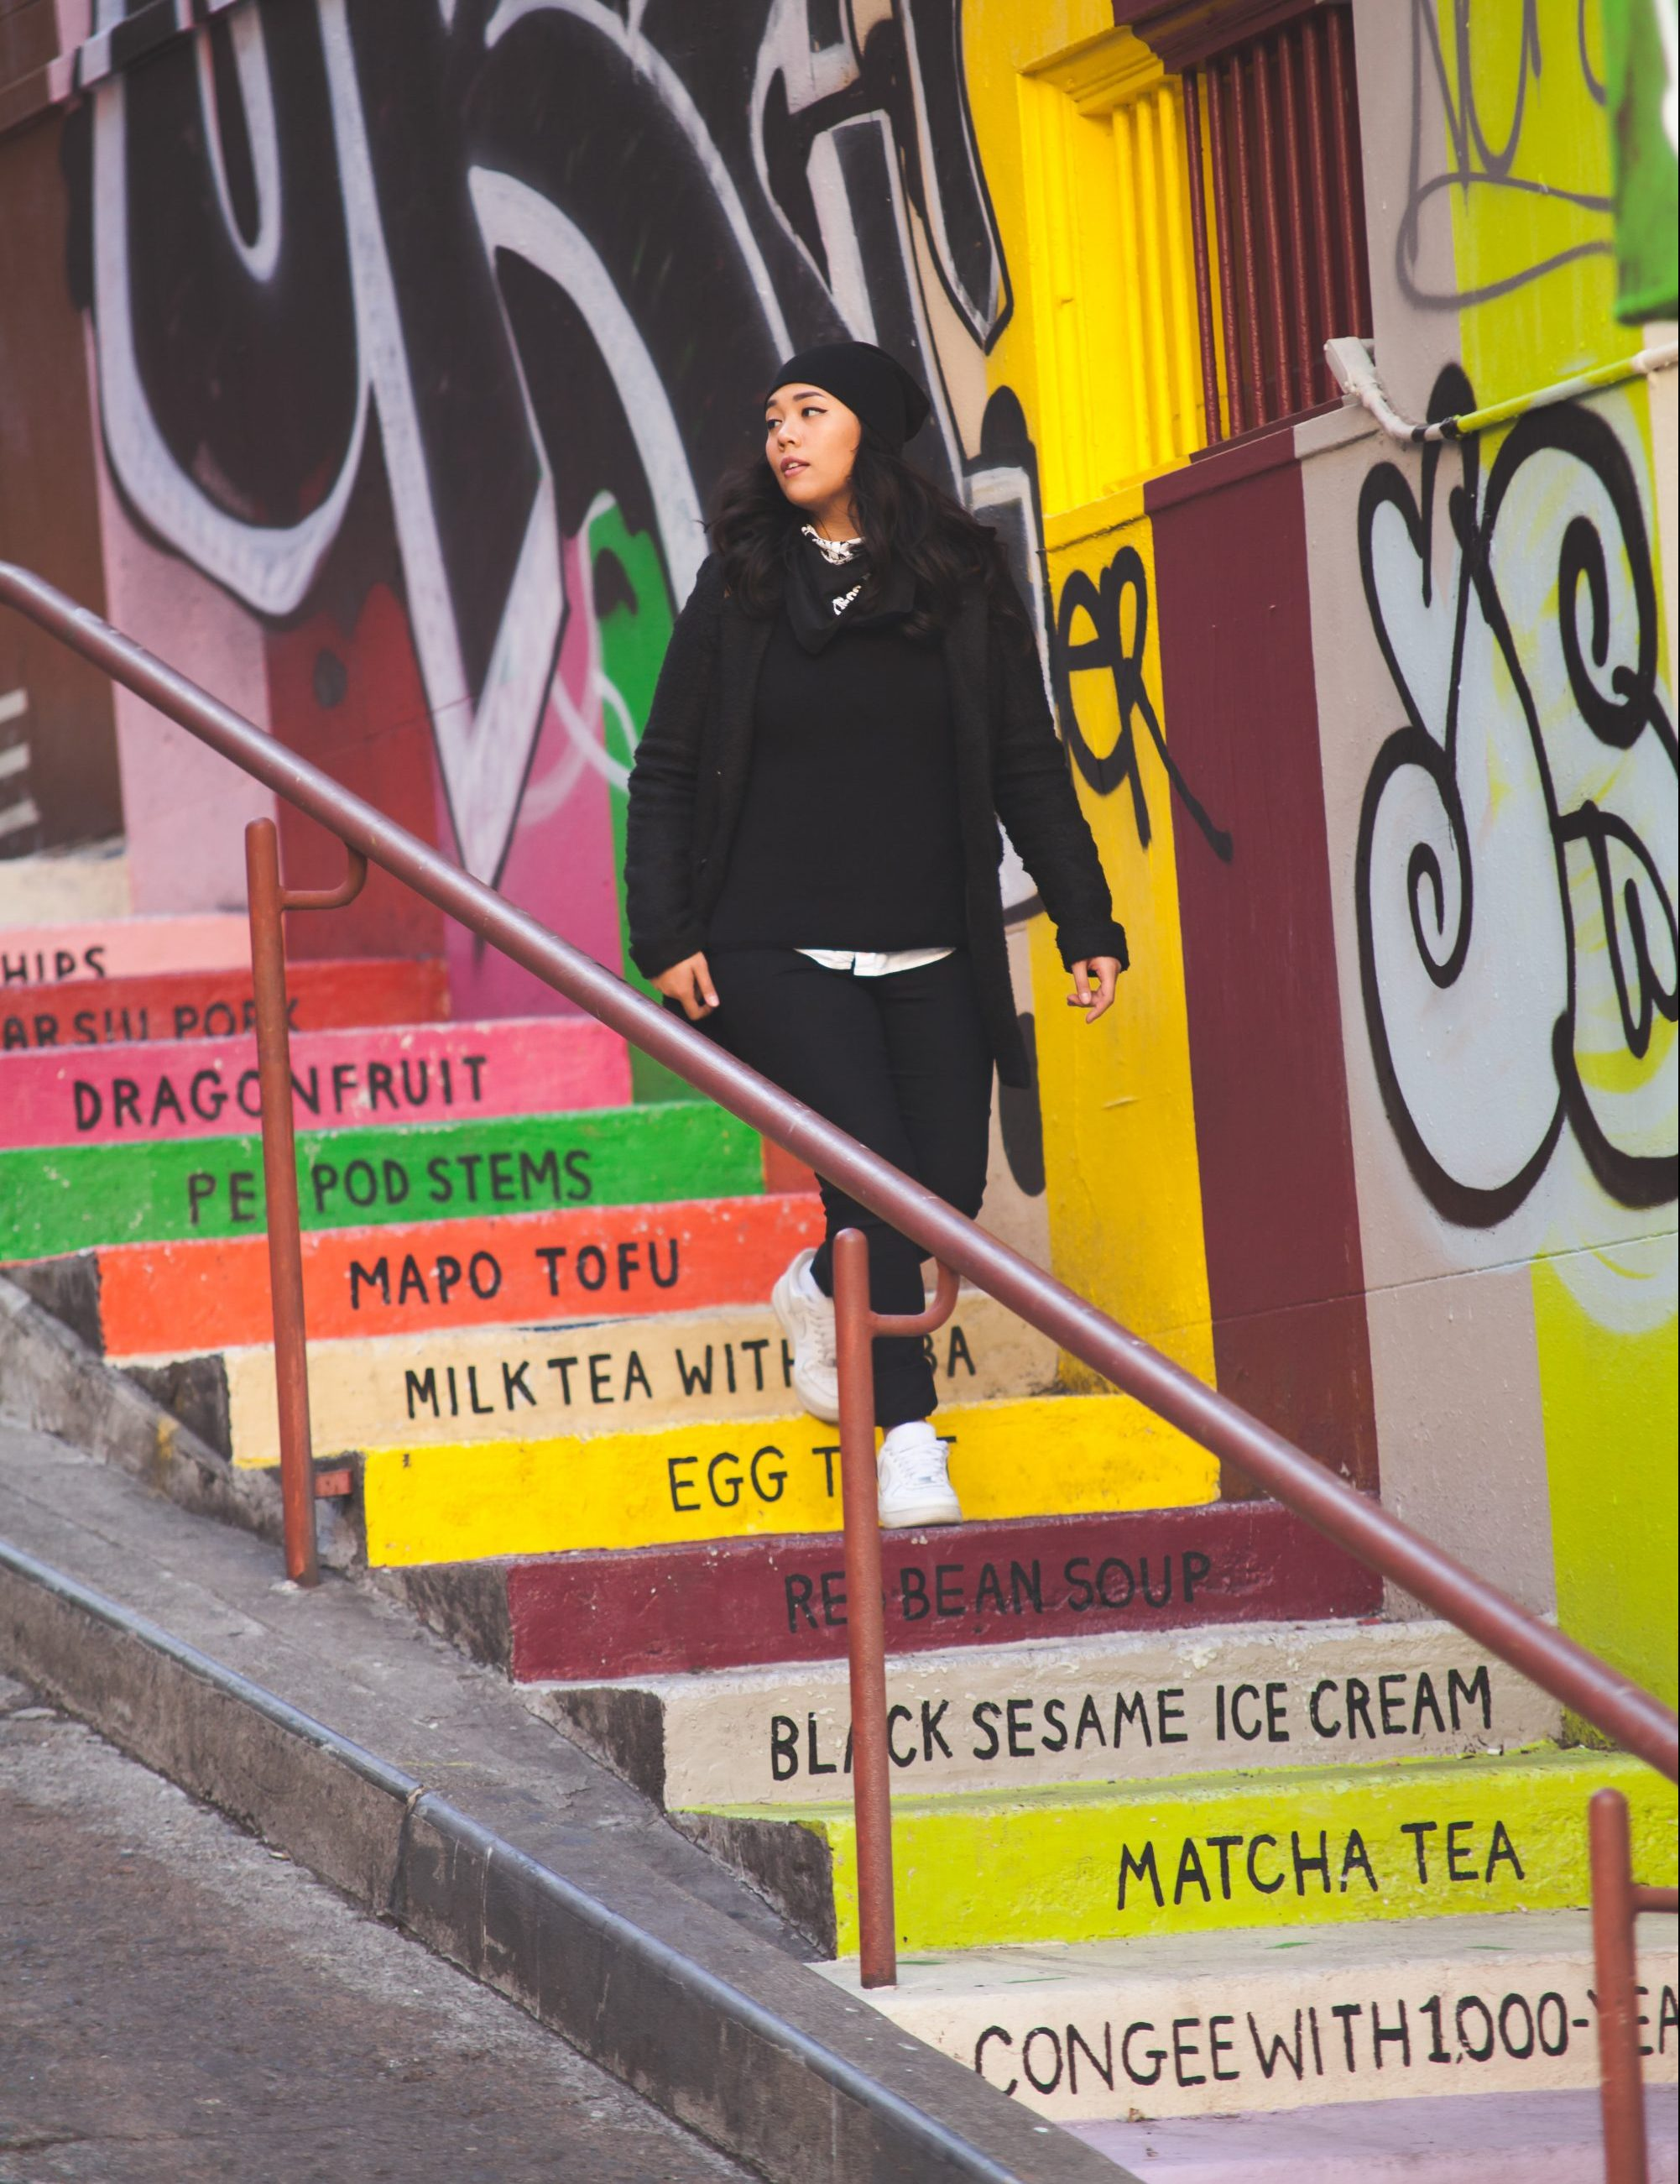 Don't forget to snap a photo at the famous Vinton Court Steps in Chinatown! They are located at Pine and Grant. St in Chinatown, San Francisco. - www.theballeronabudget.com